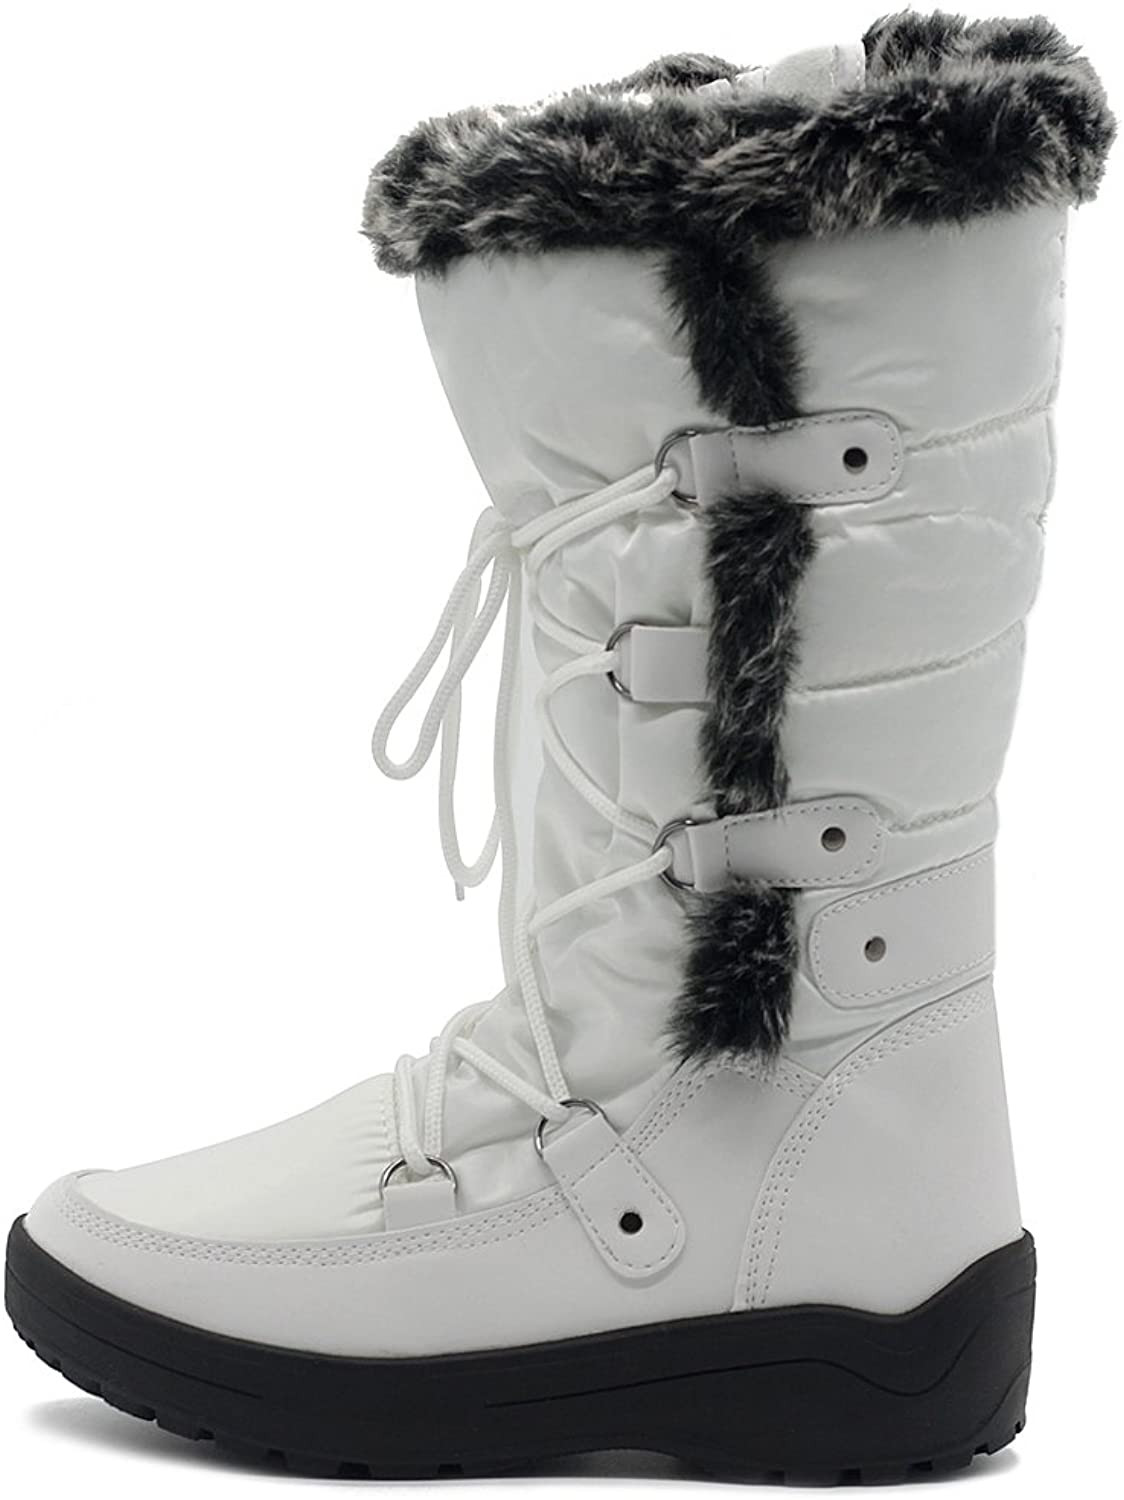 Ollio Womens shoes Lace Up Nylone Padding Quilted Fur Snow Duck Boots TWB5127 (9 B(M) US, White)